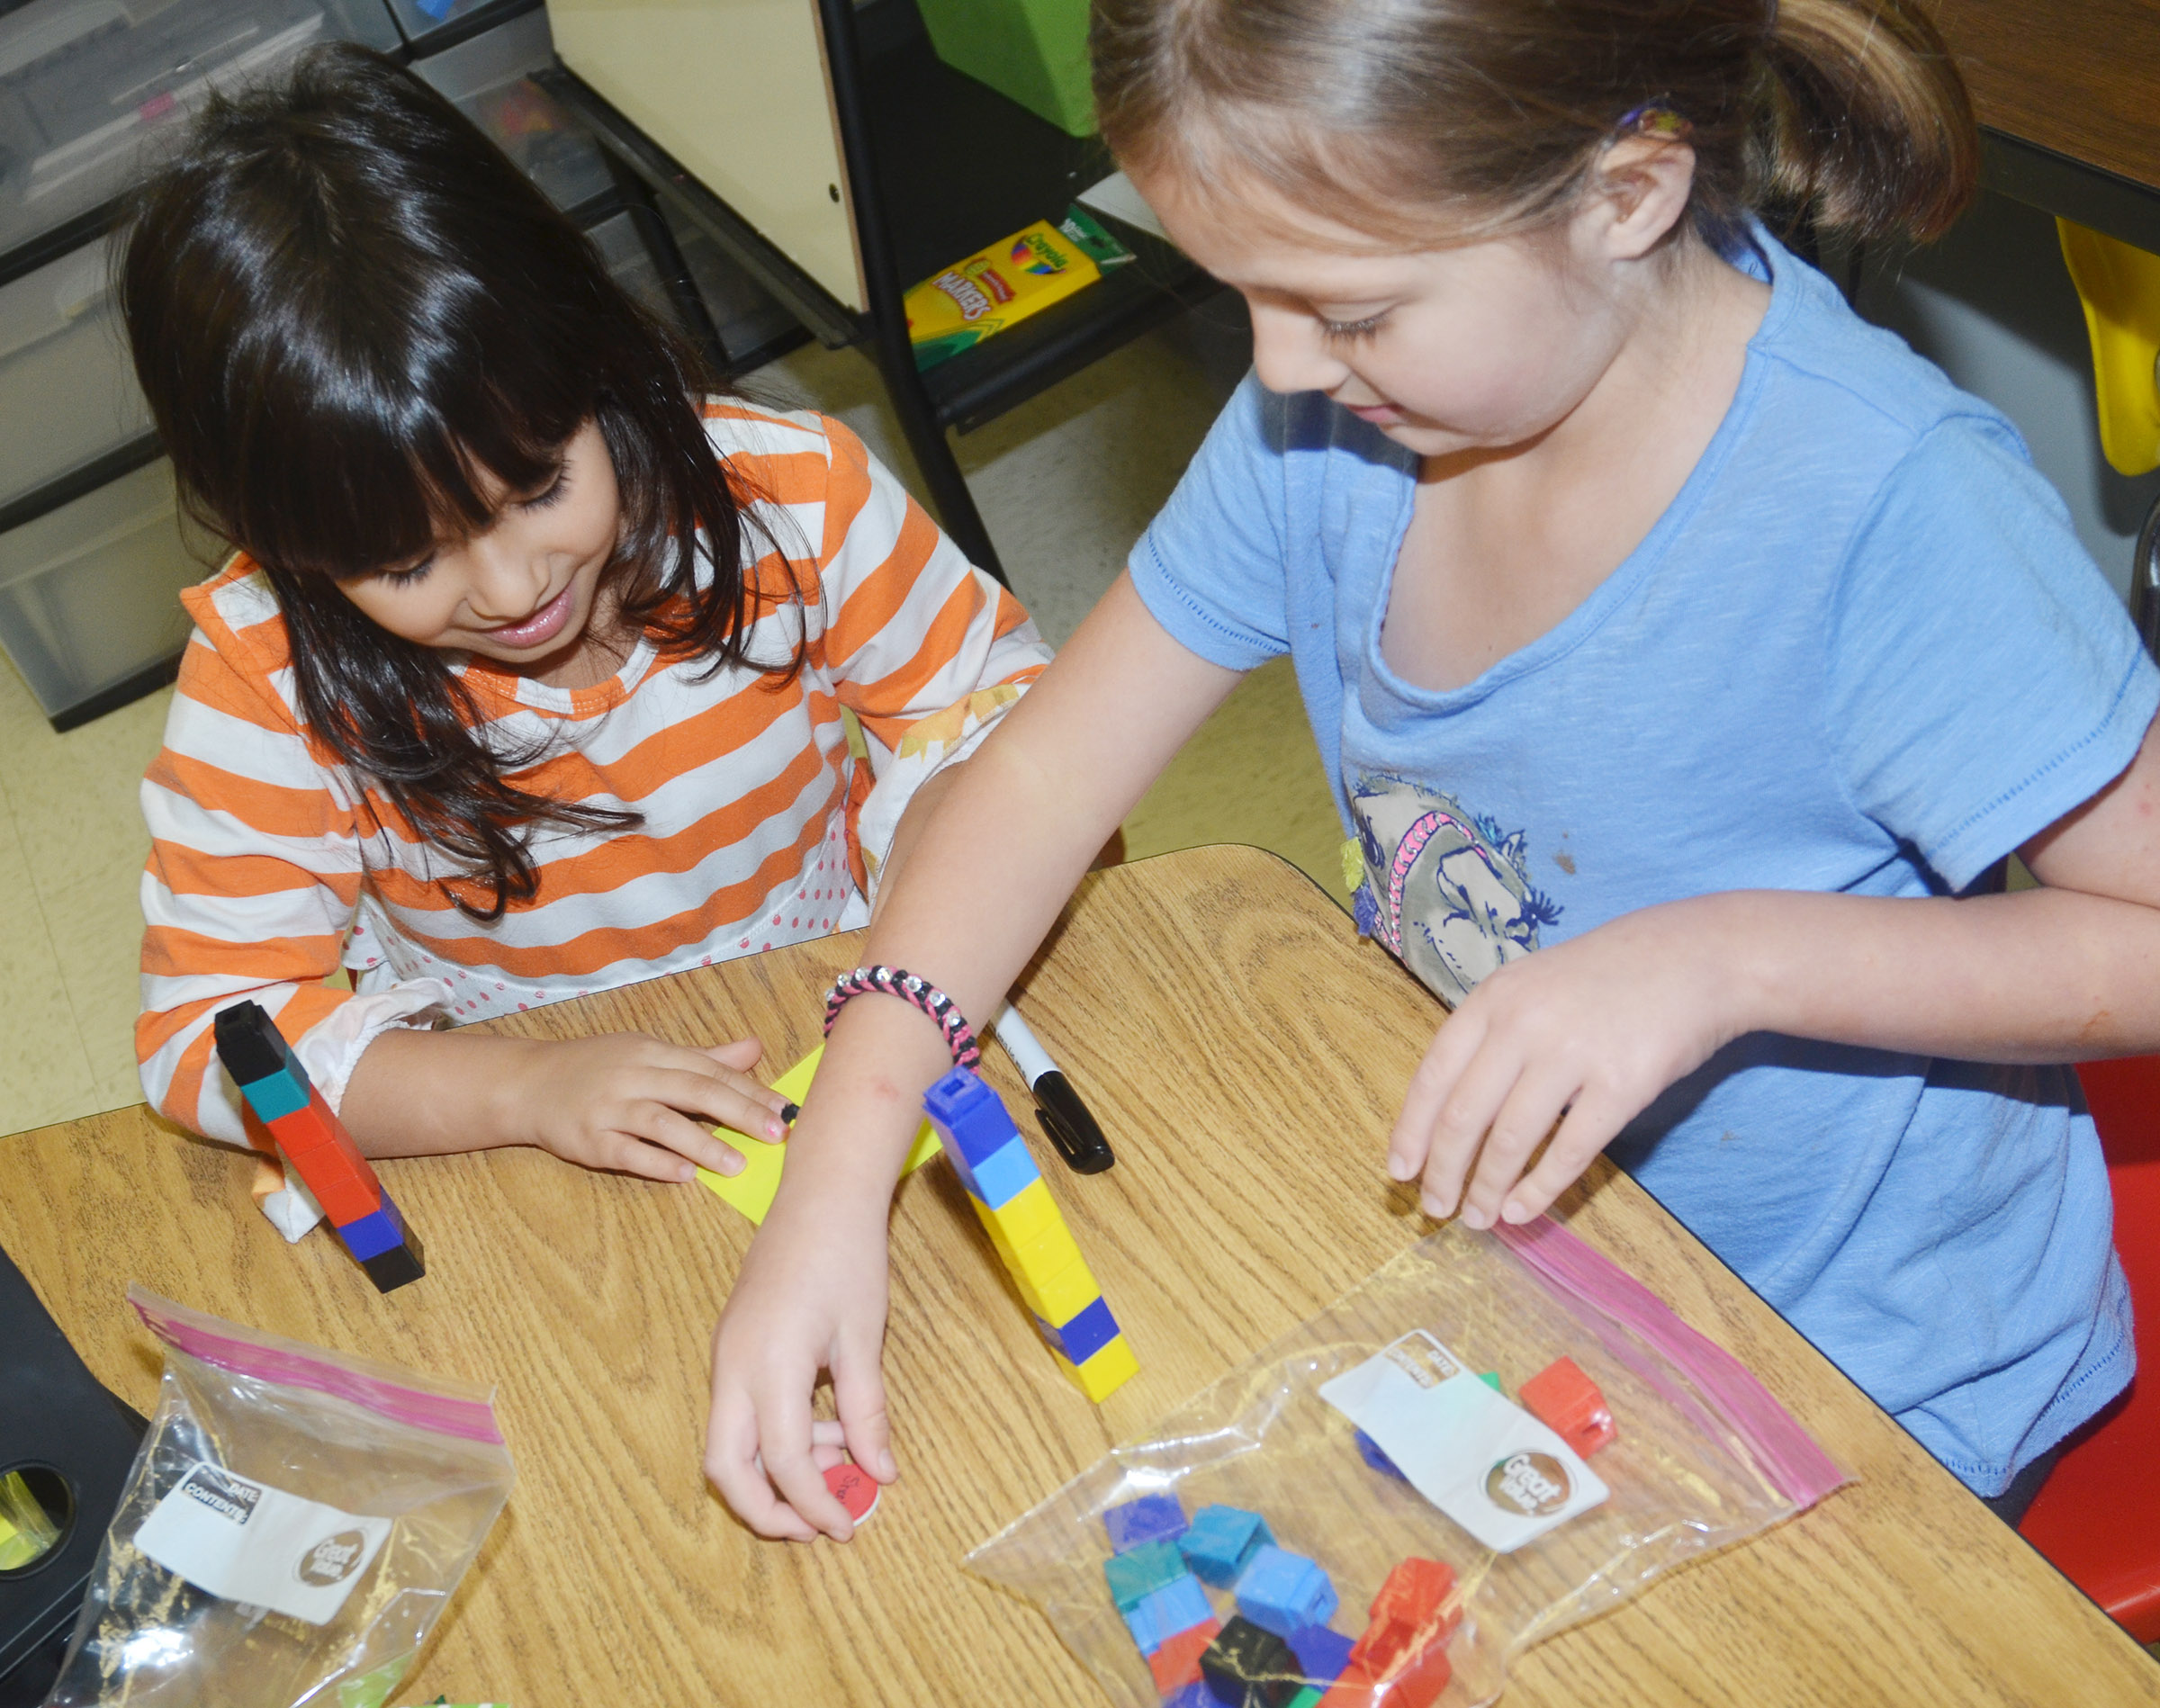 CES first-graders Carol Moura, at left, and Delaney Staton count blocks together.